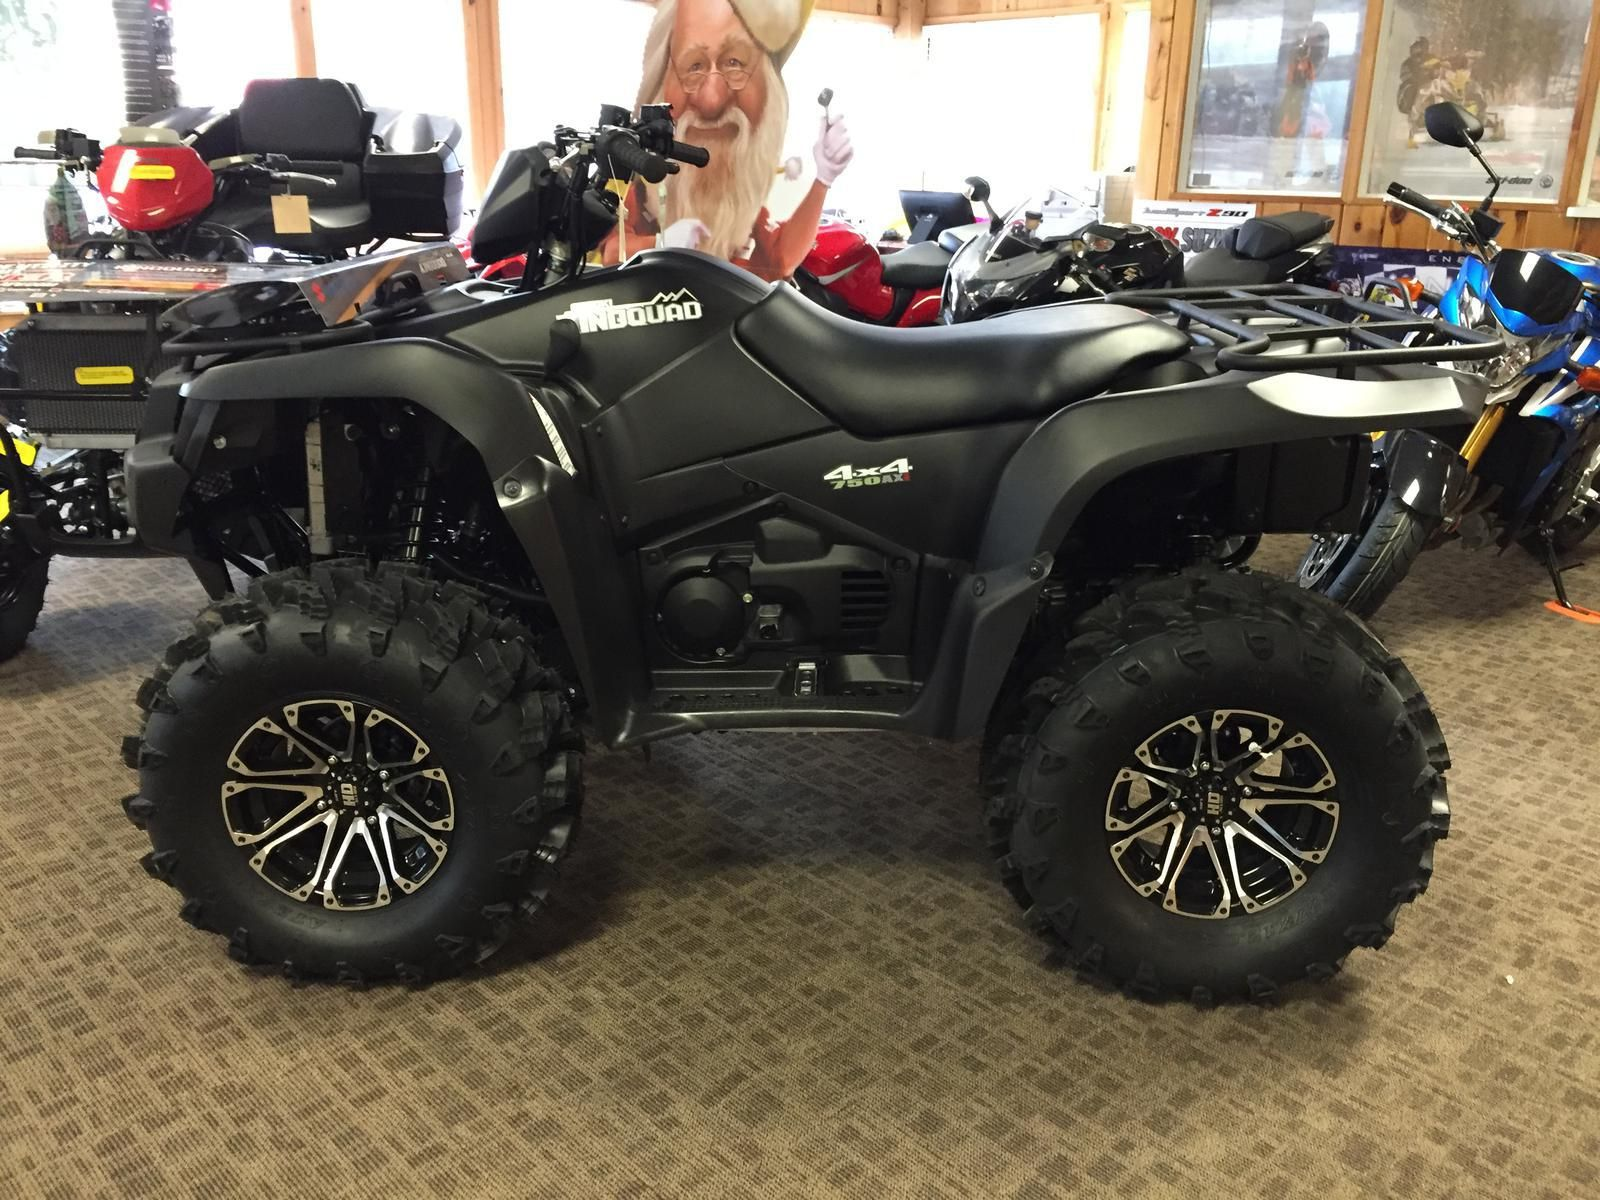 2016 suzuki kingquad 750 4x4 axi special edition autos. Black Bedroom Furniture Sets. Home Design Ideas